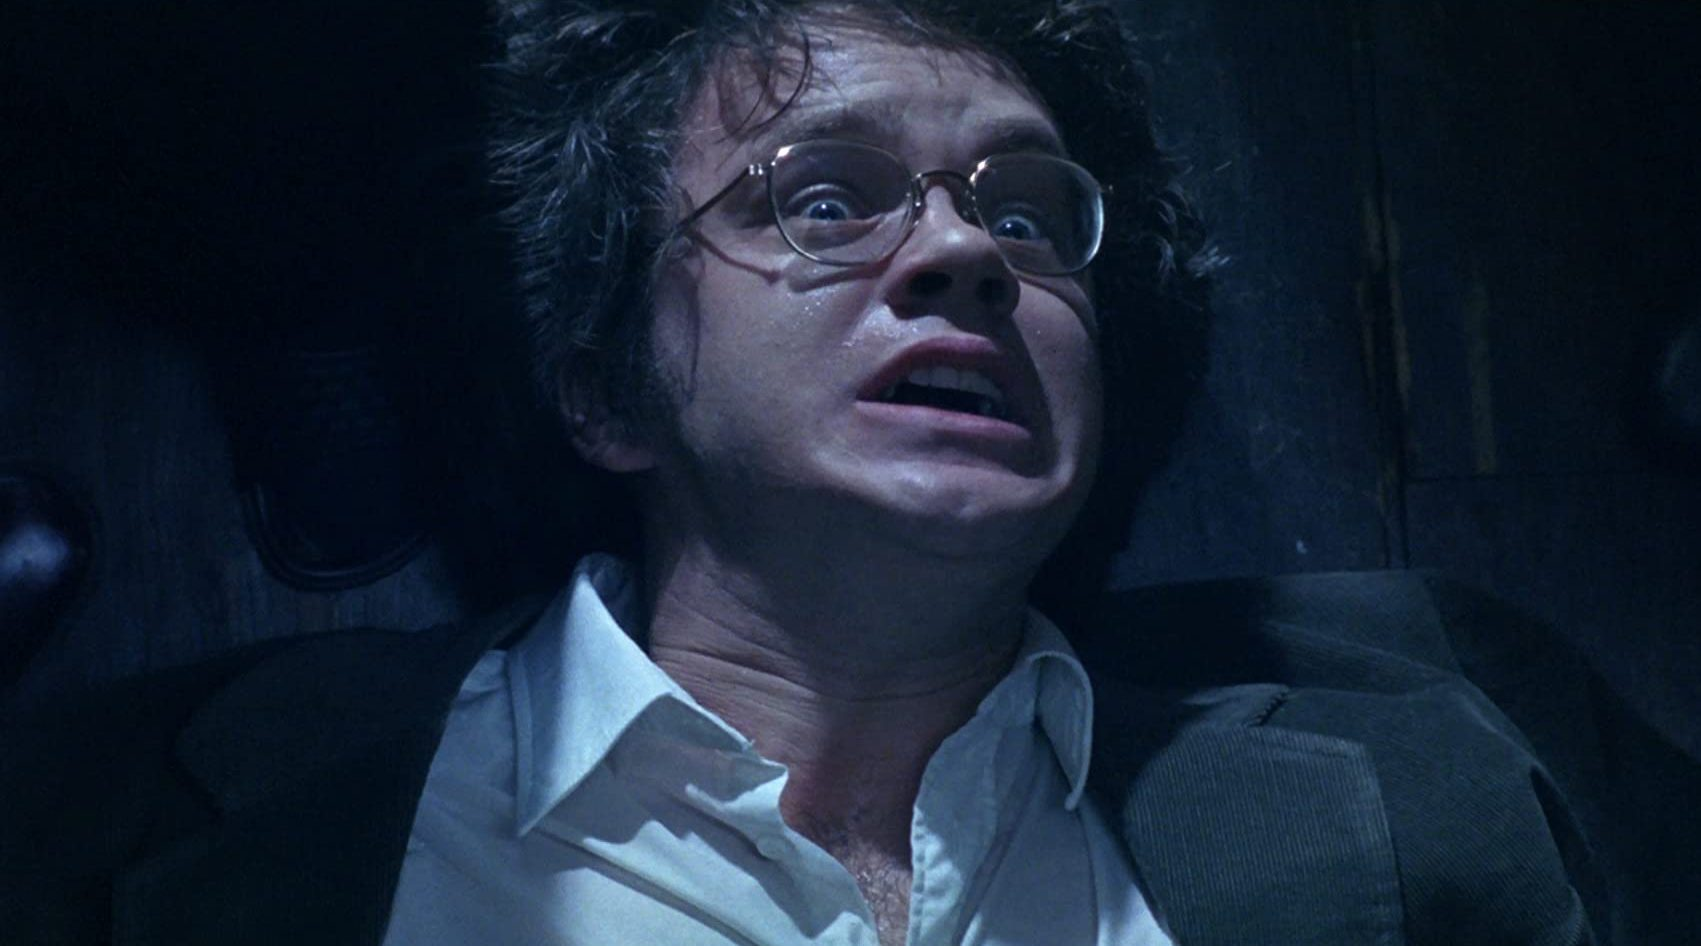 15a e1606824698974 20 Facts About Cult Psychological Horror Film Jacob's Ladder